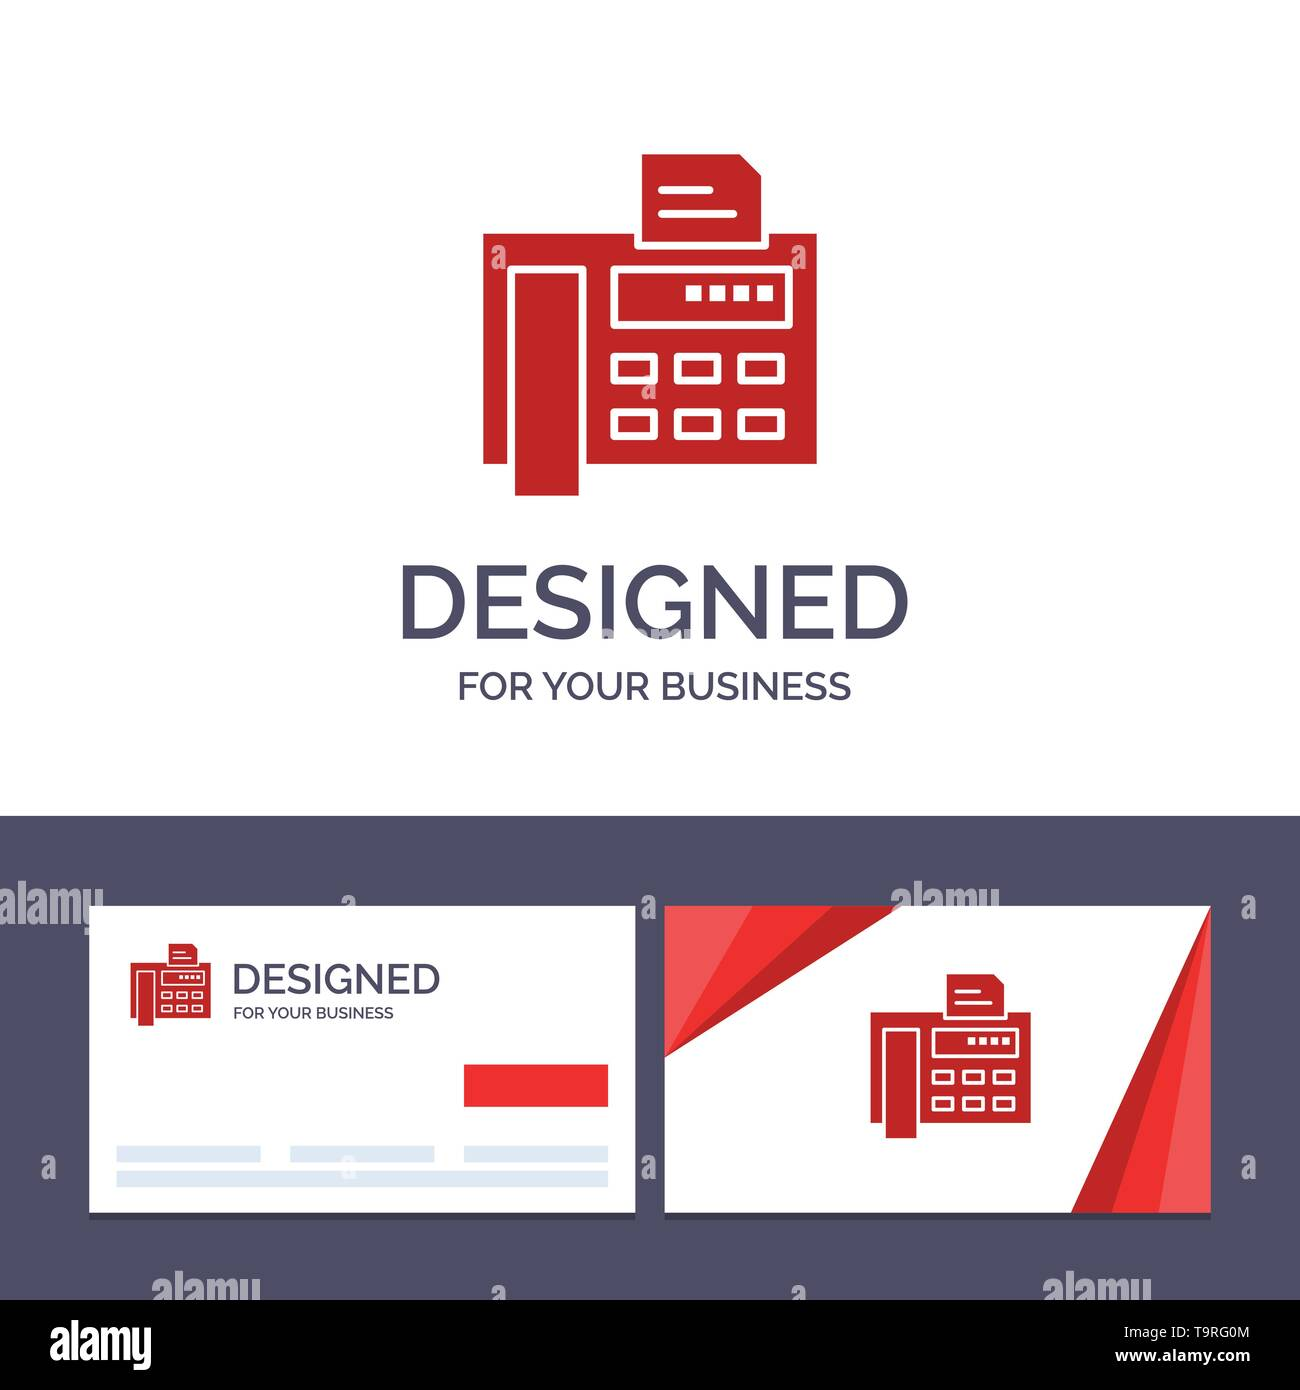 Creative Business Card and Logo template Fax, Phone, Typewriter, Fax Machine Vector Illustration - Stock Image